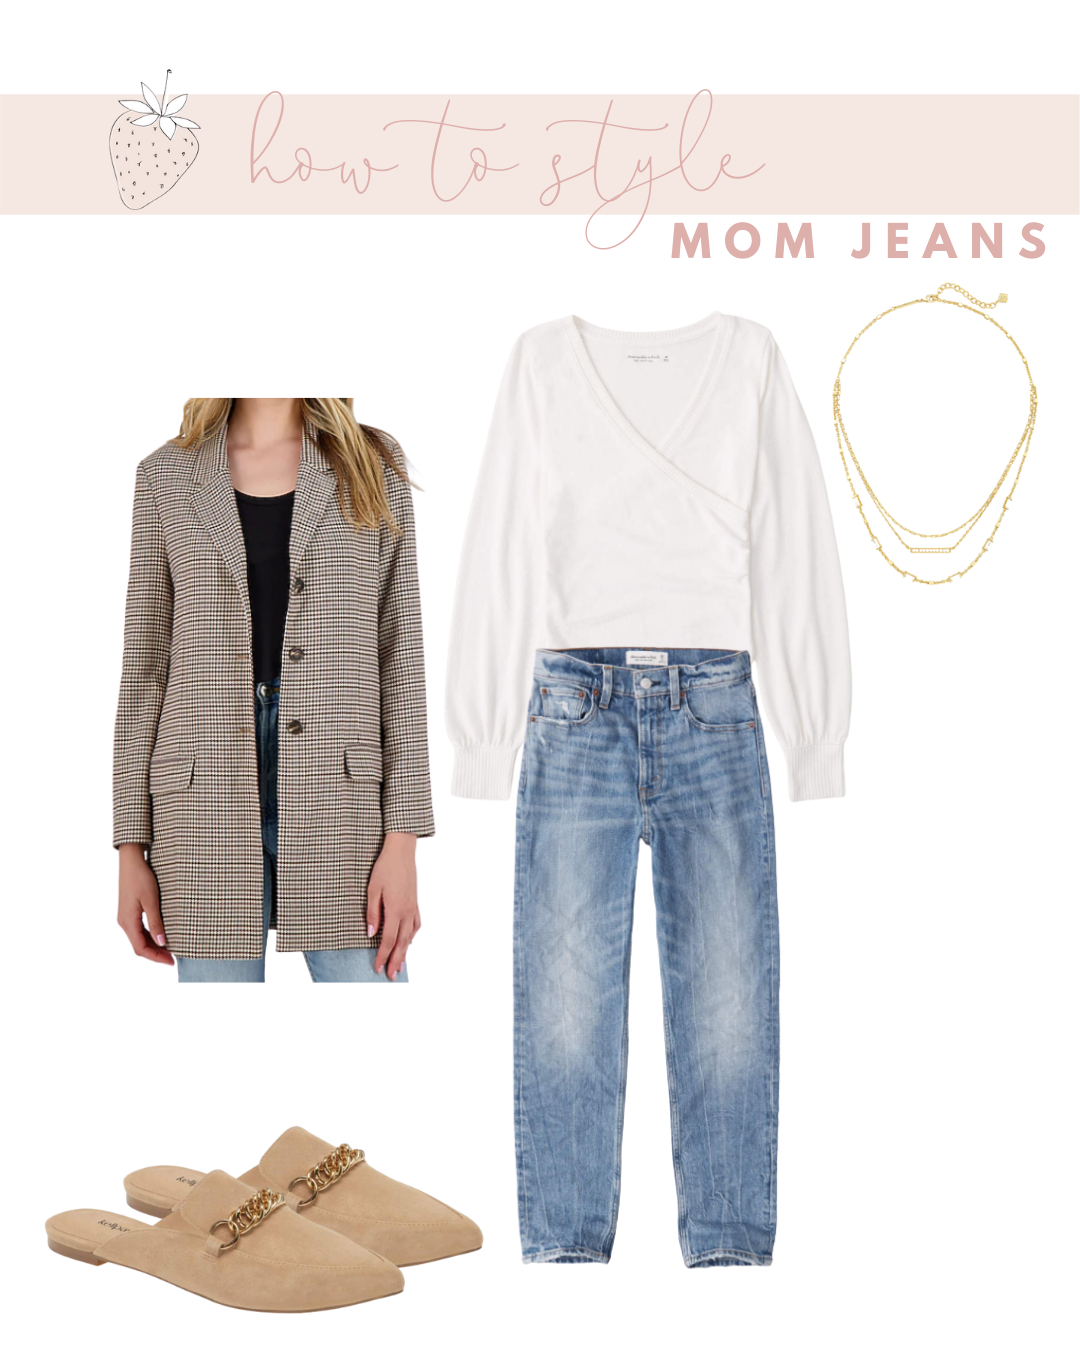 How to Wear Mom Jeans without Looking Frumpy